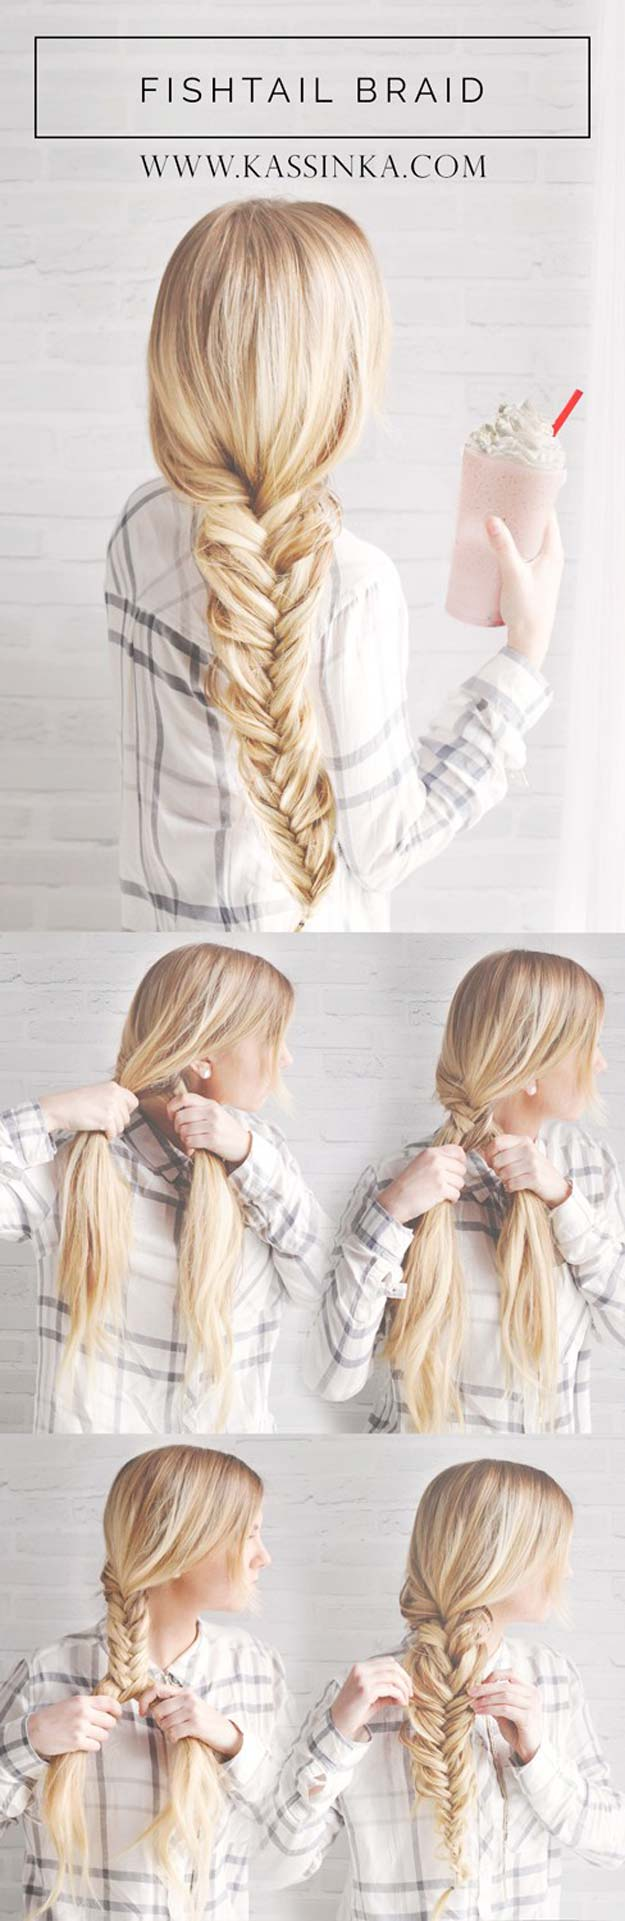 Miraculous 40 Of The Best Cute Hair Braiding Tutorials Diy Projects For Teens Short Hairstyles Gunalazisus